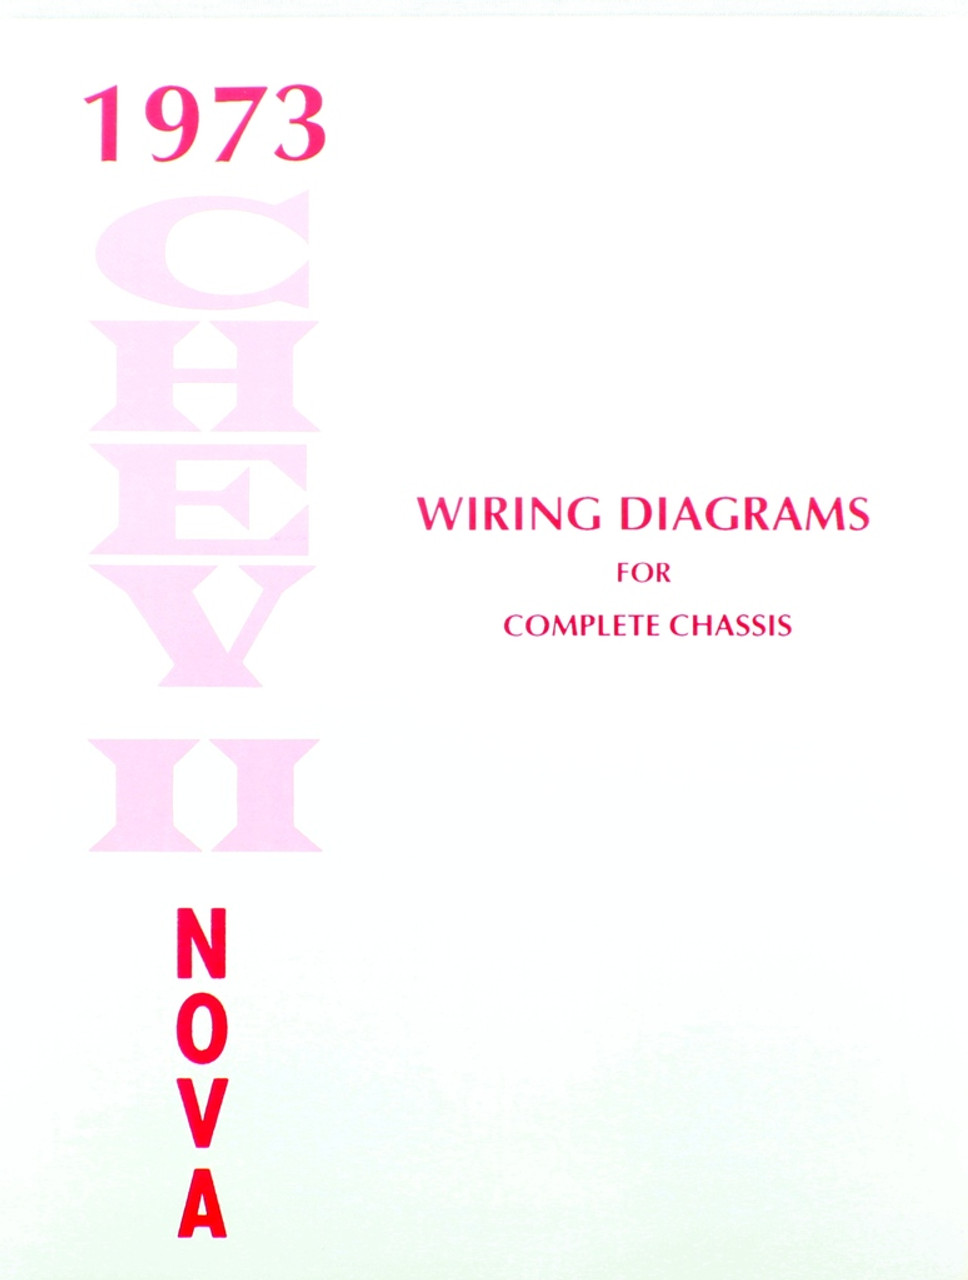 73 chevy nova electrical wiring diagram manual 1973 i 5 classic chevy 73 chevy nova electrical wiring diagram manual 1973 swarovskicordoba Choice Image